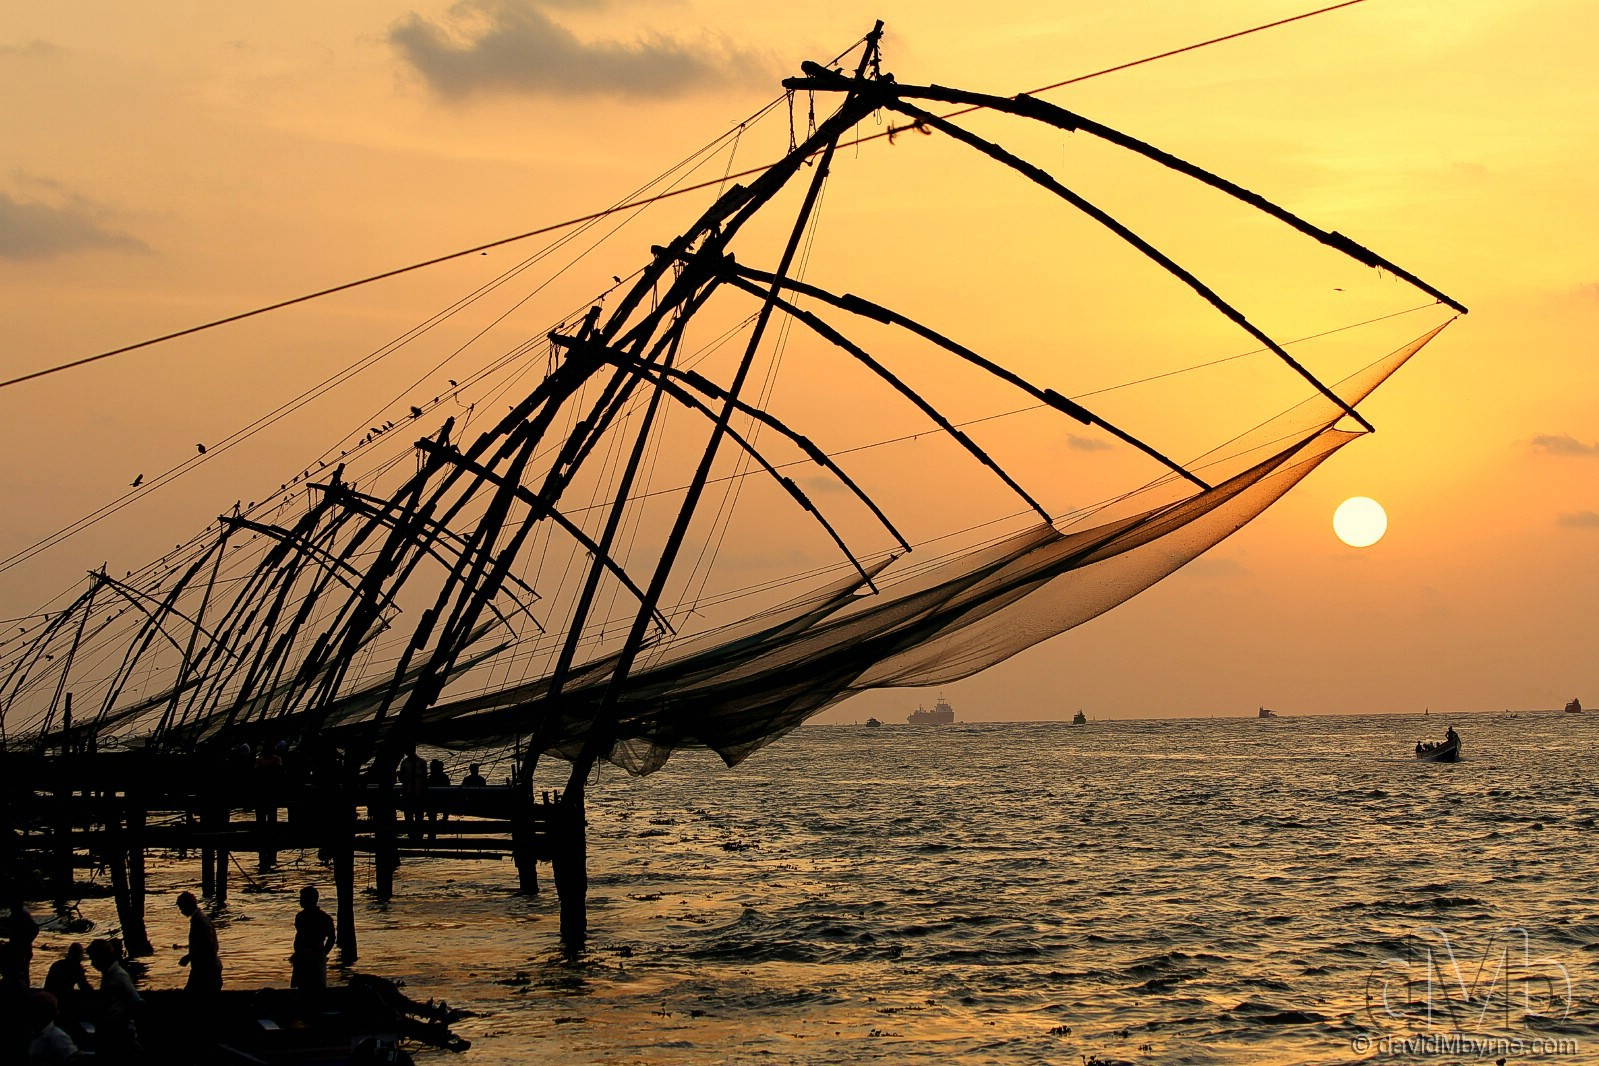 Chinese fishing nets at the tip of Fort Cochin at sunset, Kerala, India. September 19th, 2012 (EOS 60D || Canon 70-300mm || 70mm, 1/250sec, f/5.6, iso100)